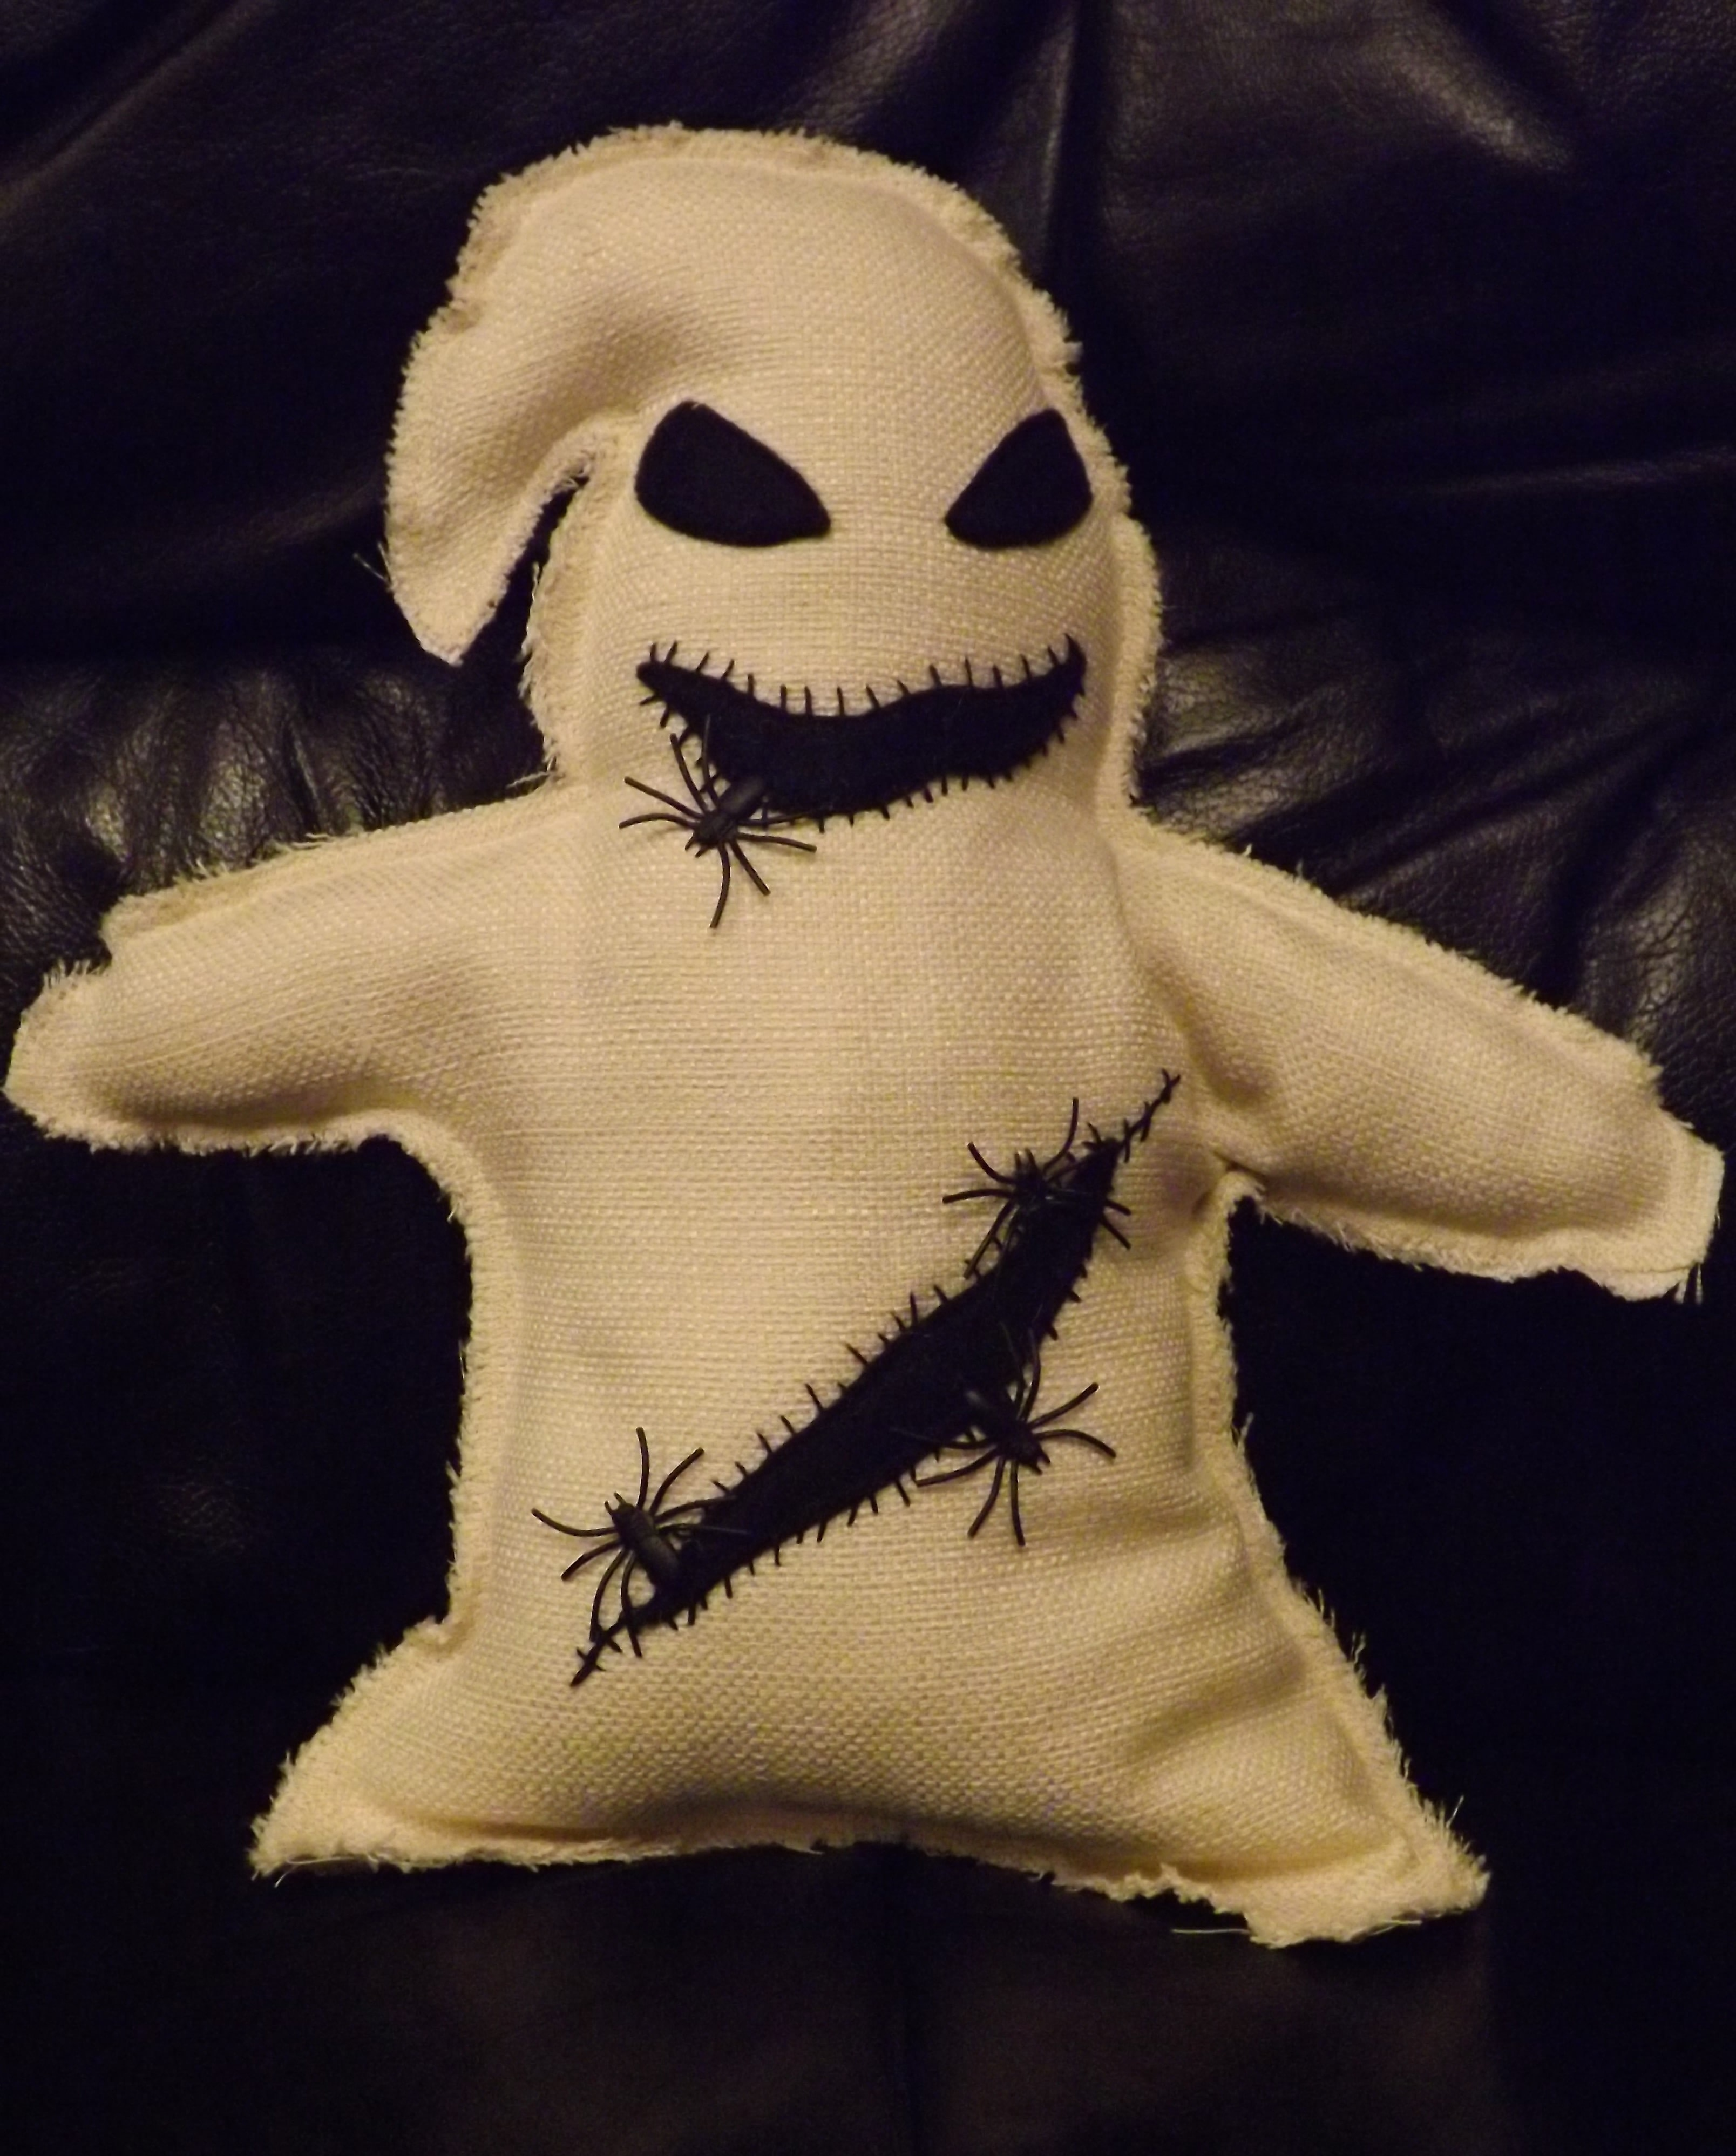 The Nightmare Before Christmas Dolls